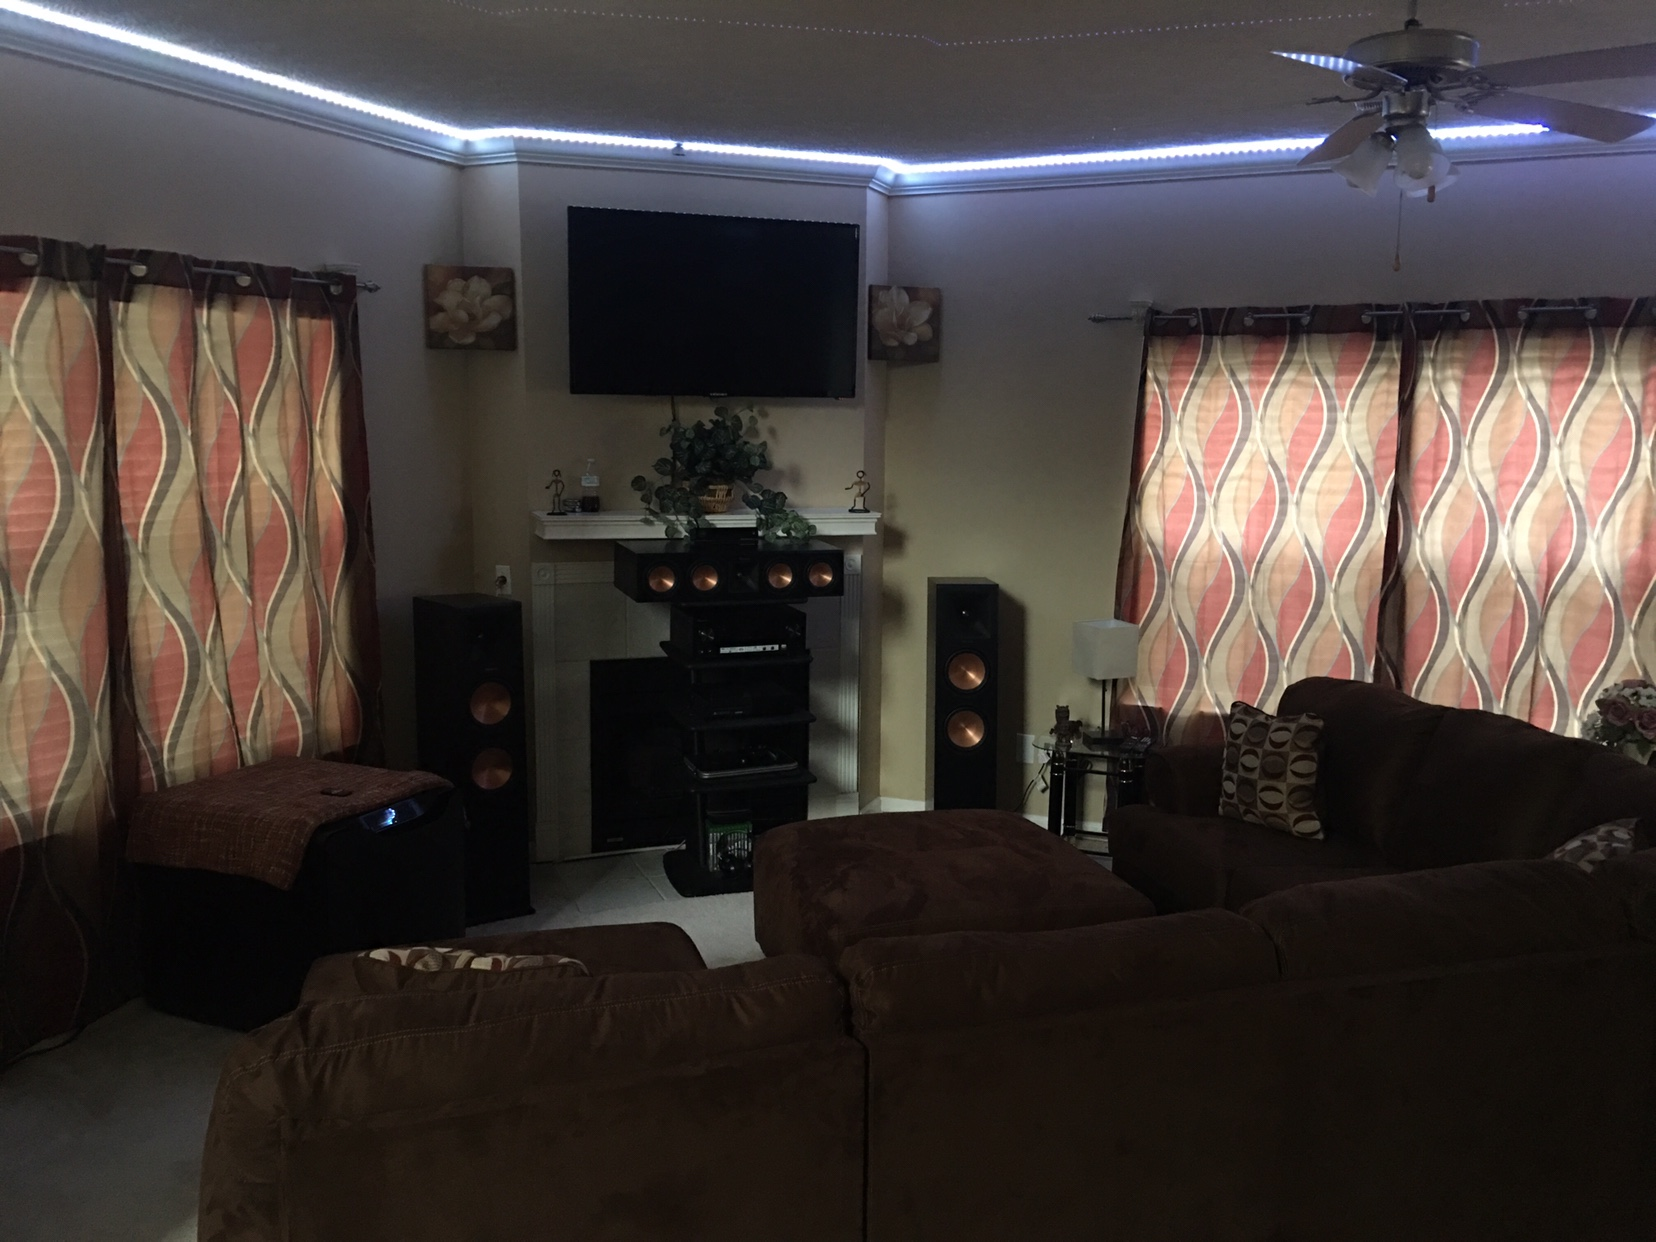 exterior sound dampening avs forum home theater discussions and reviews. Black Bedroom Furniture Sets. Home Design Ideas